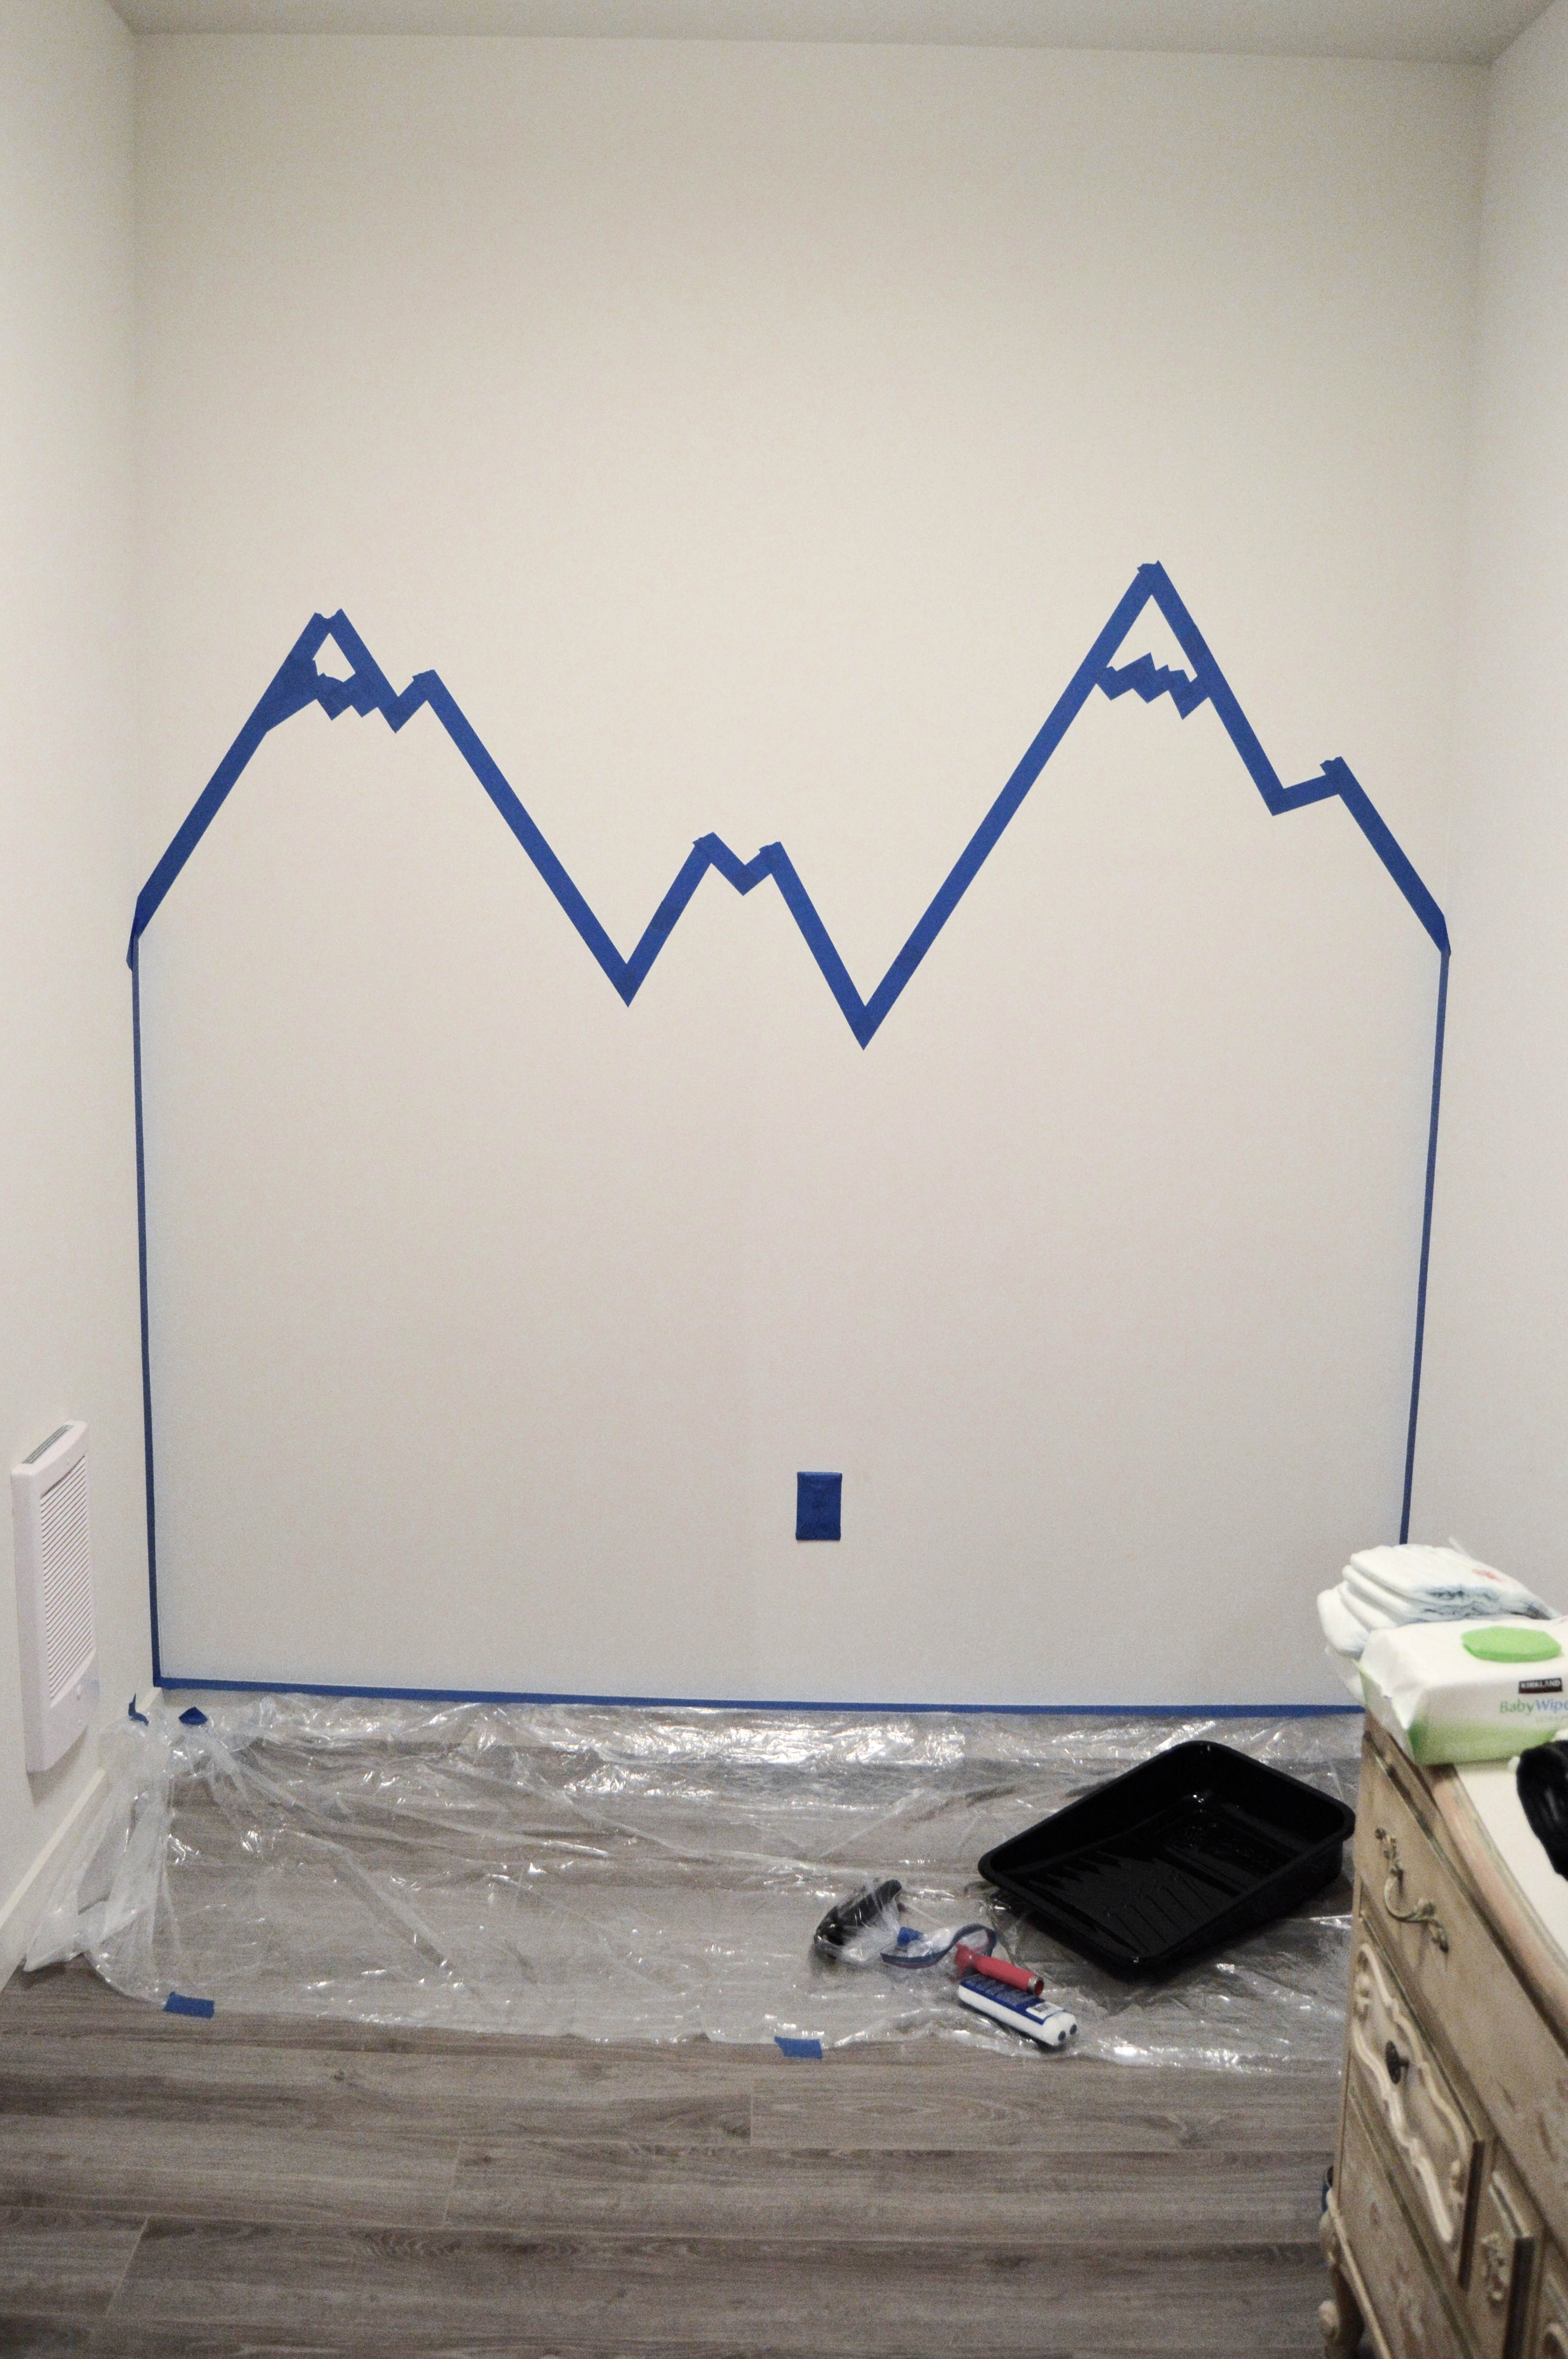 Paint Comes Off Wall Easily